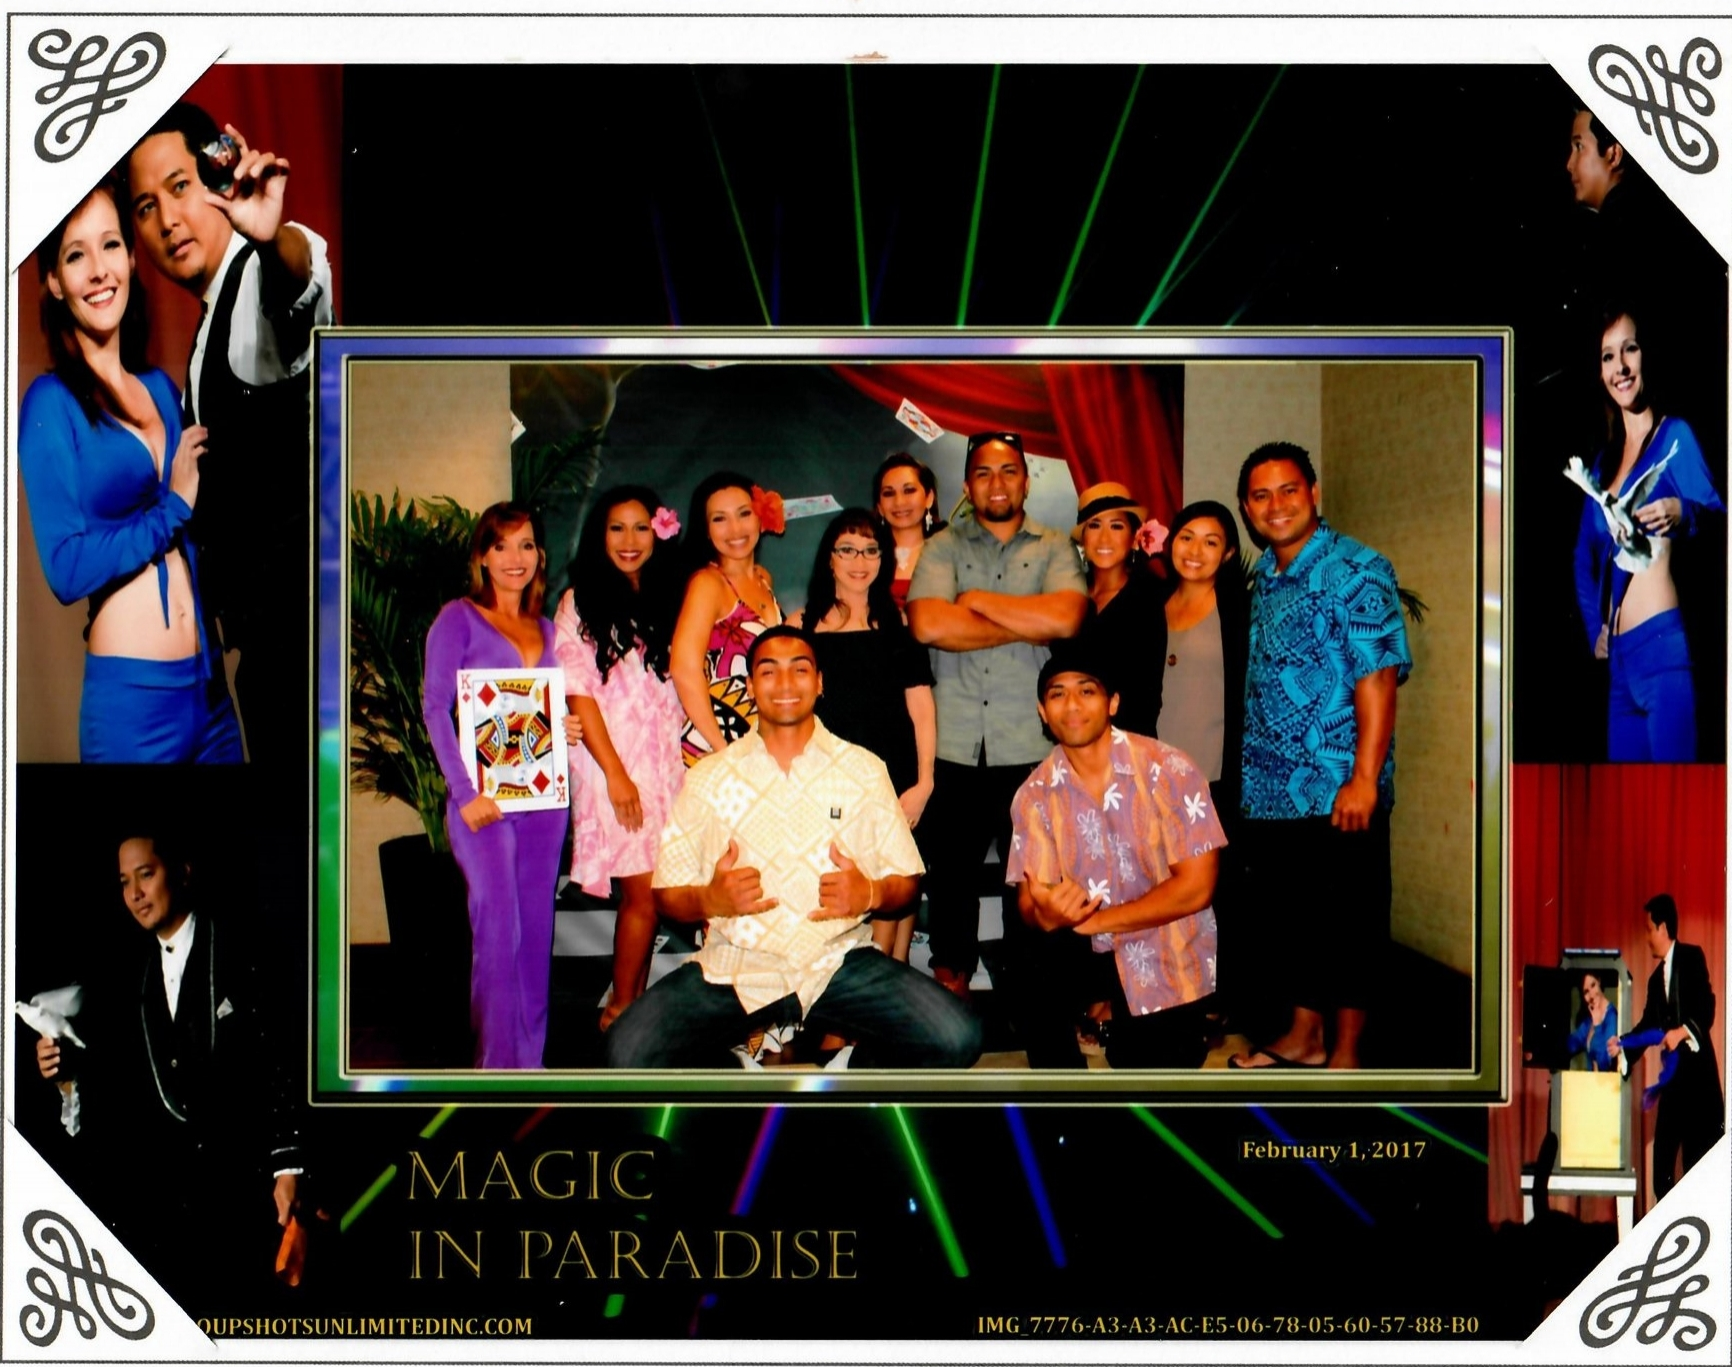 February 15, 2017 Our Performance Management Team watching Mark Mauricio's Magic Show at Hale Koa. What an entertaining show!!